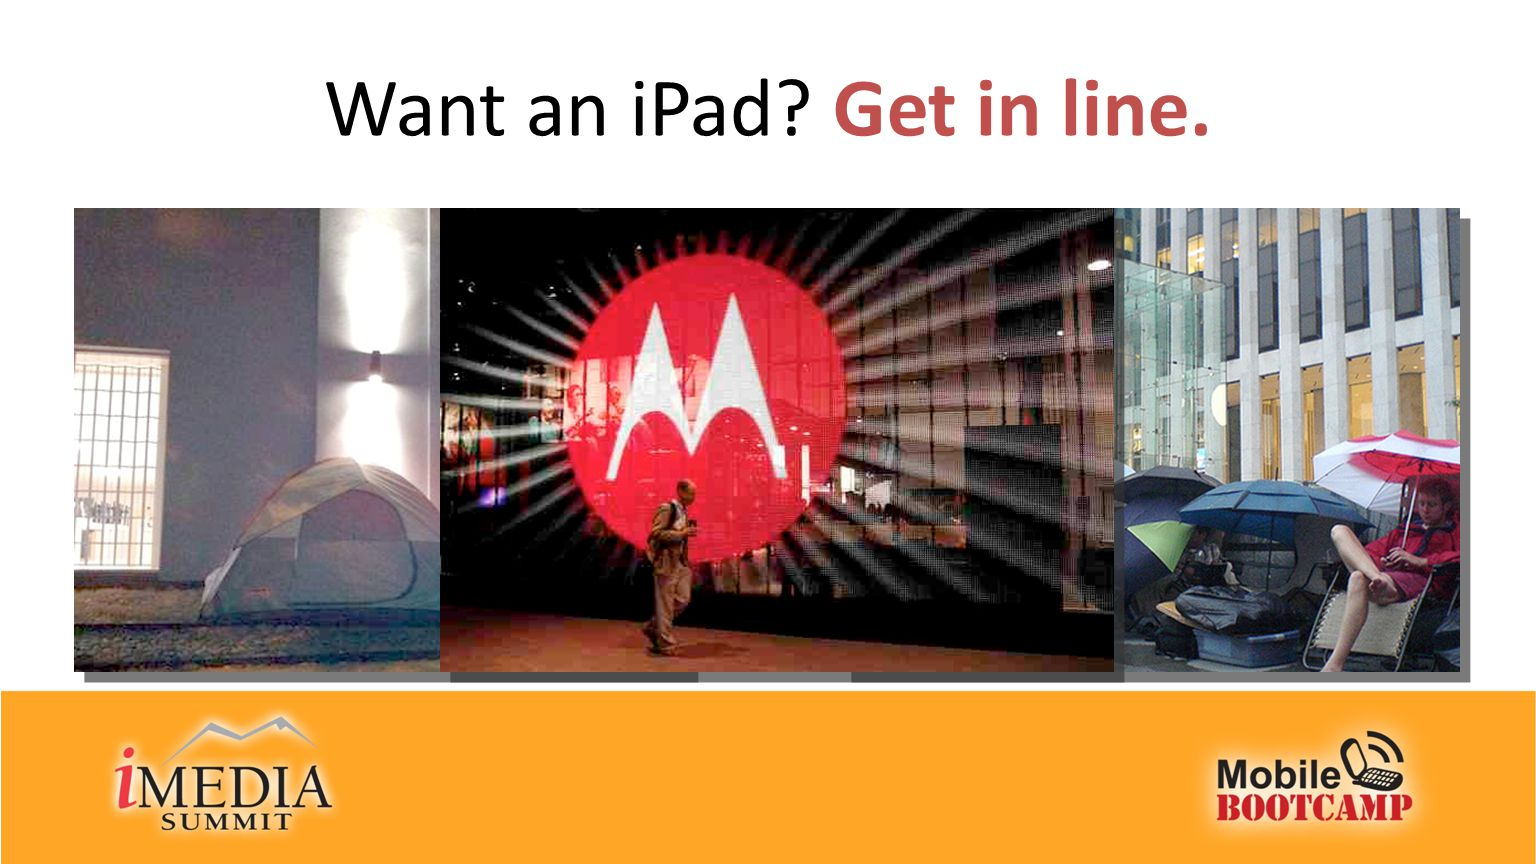 Want an iPad Get in line.